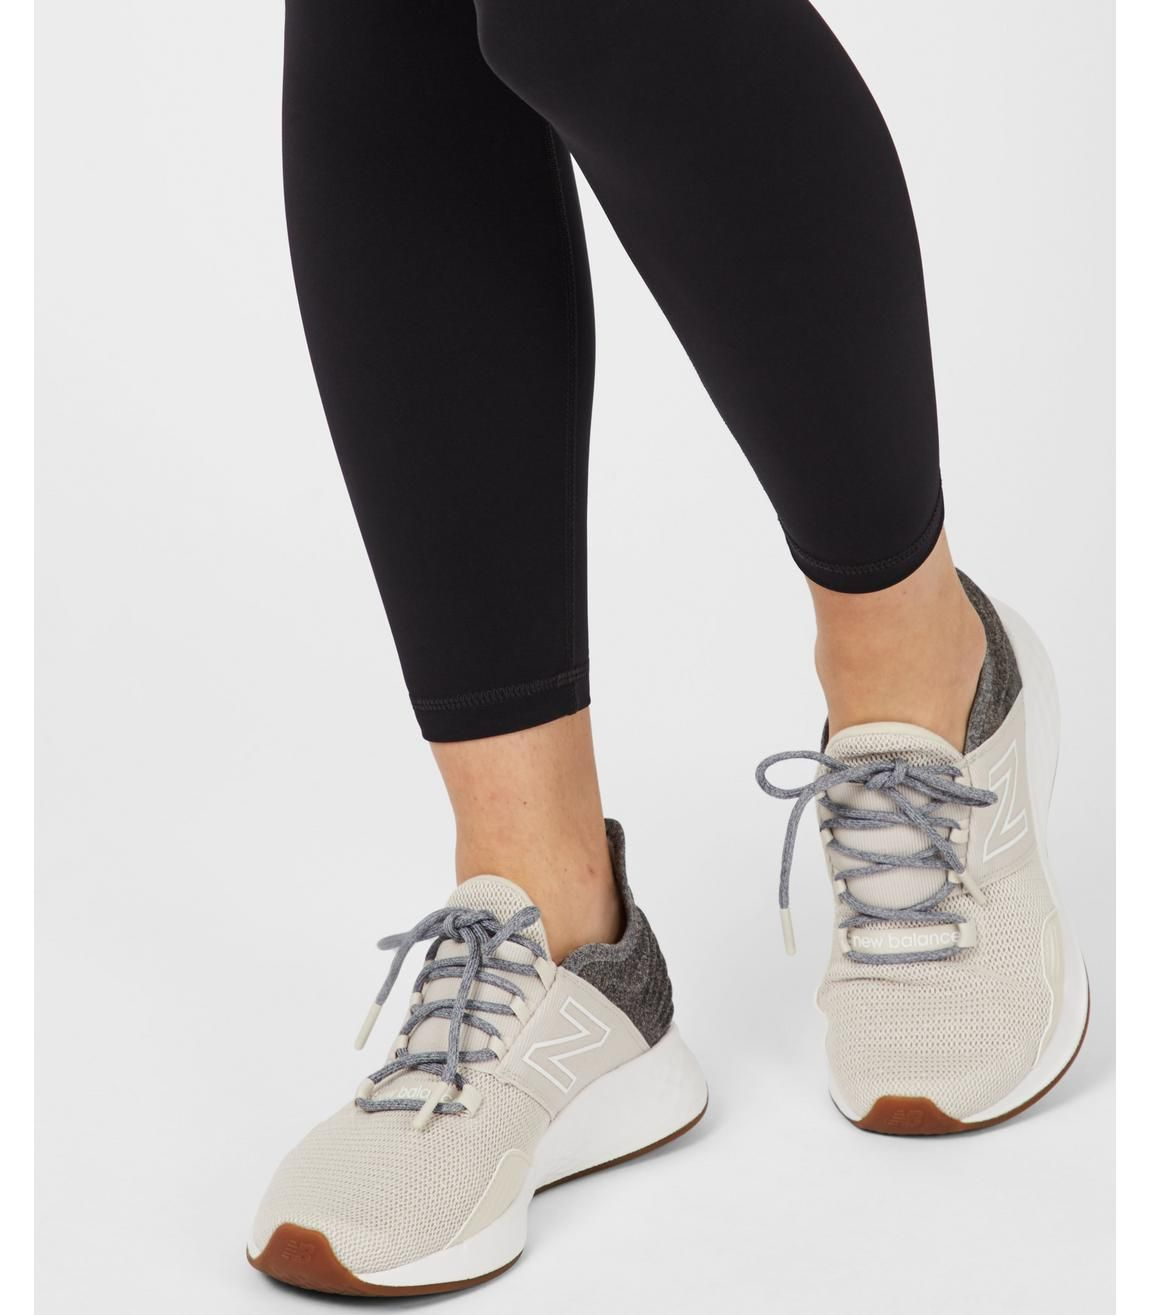 New balance trainers, Womens sneakers